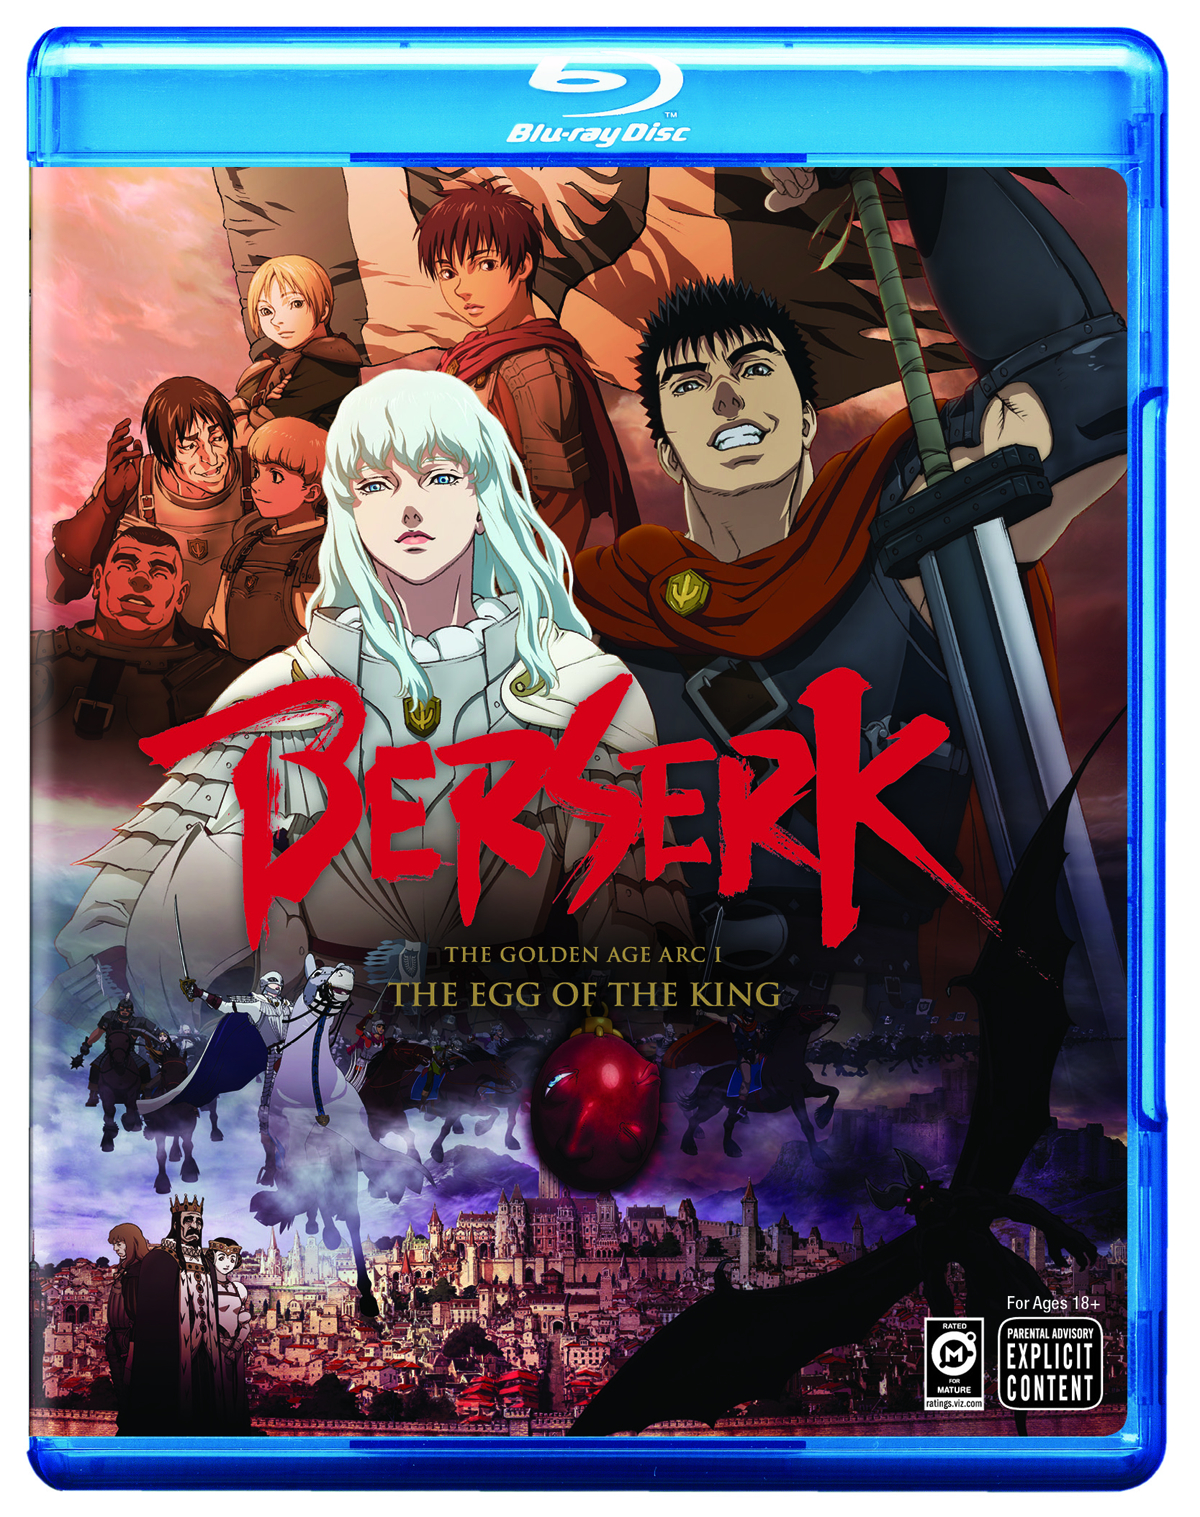 BERSERK THE GOLDEN AGE BD ARC I